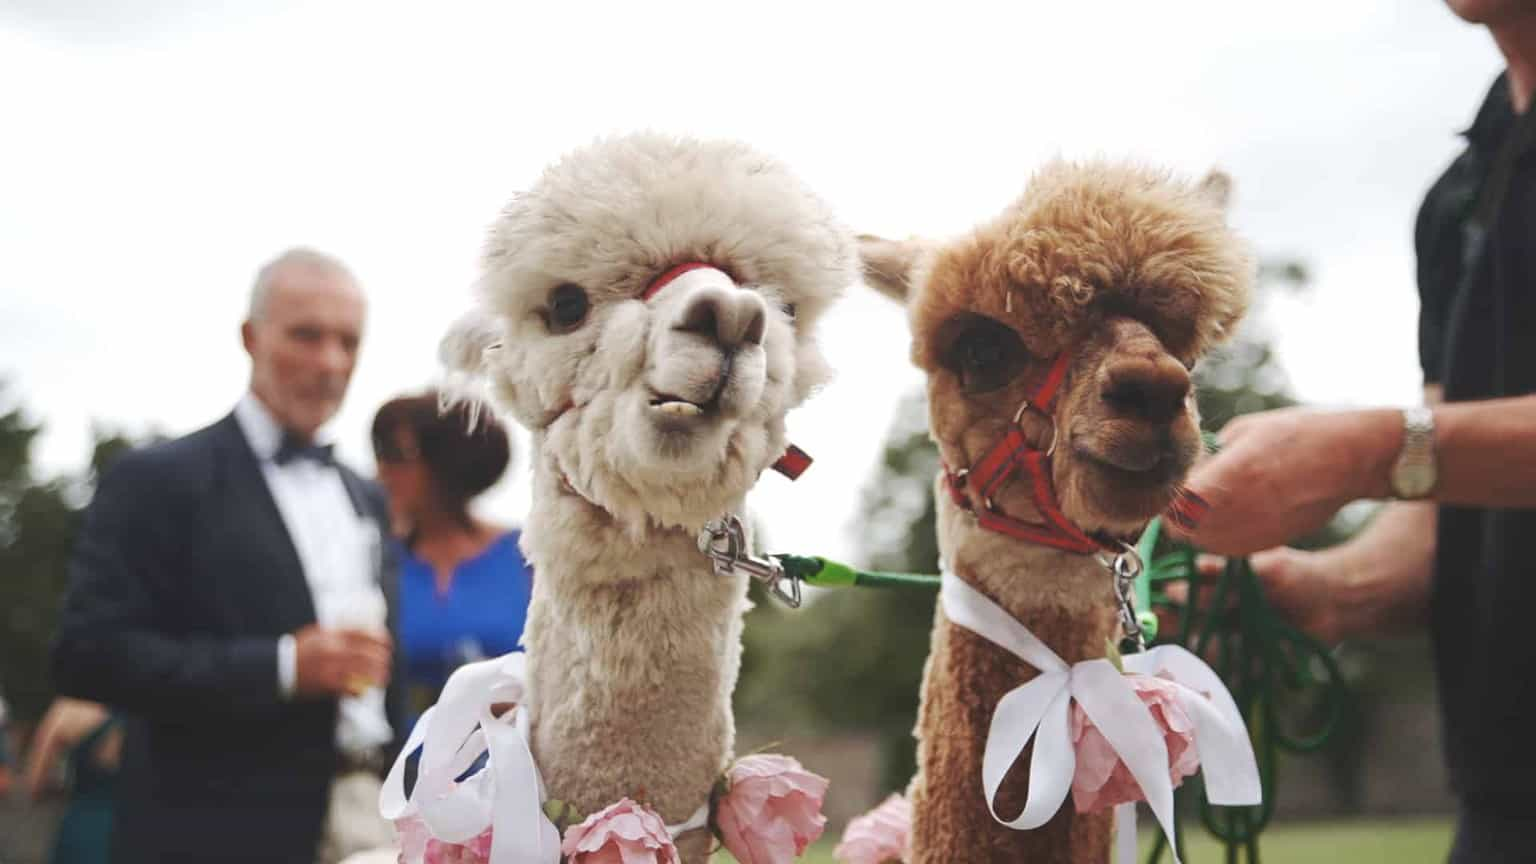 two lamas between wedding guest steering to the camera